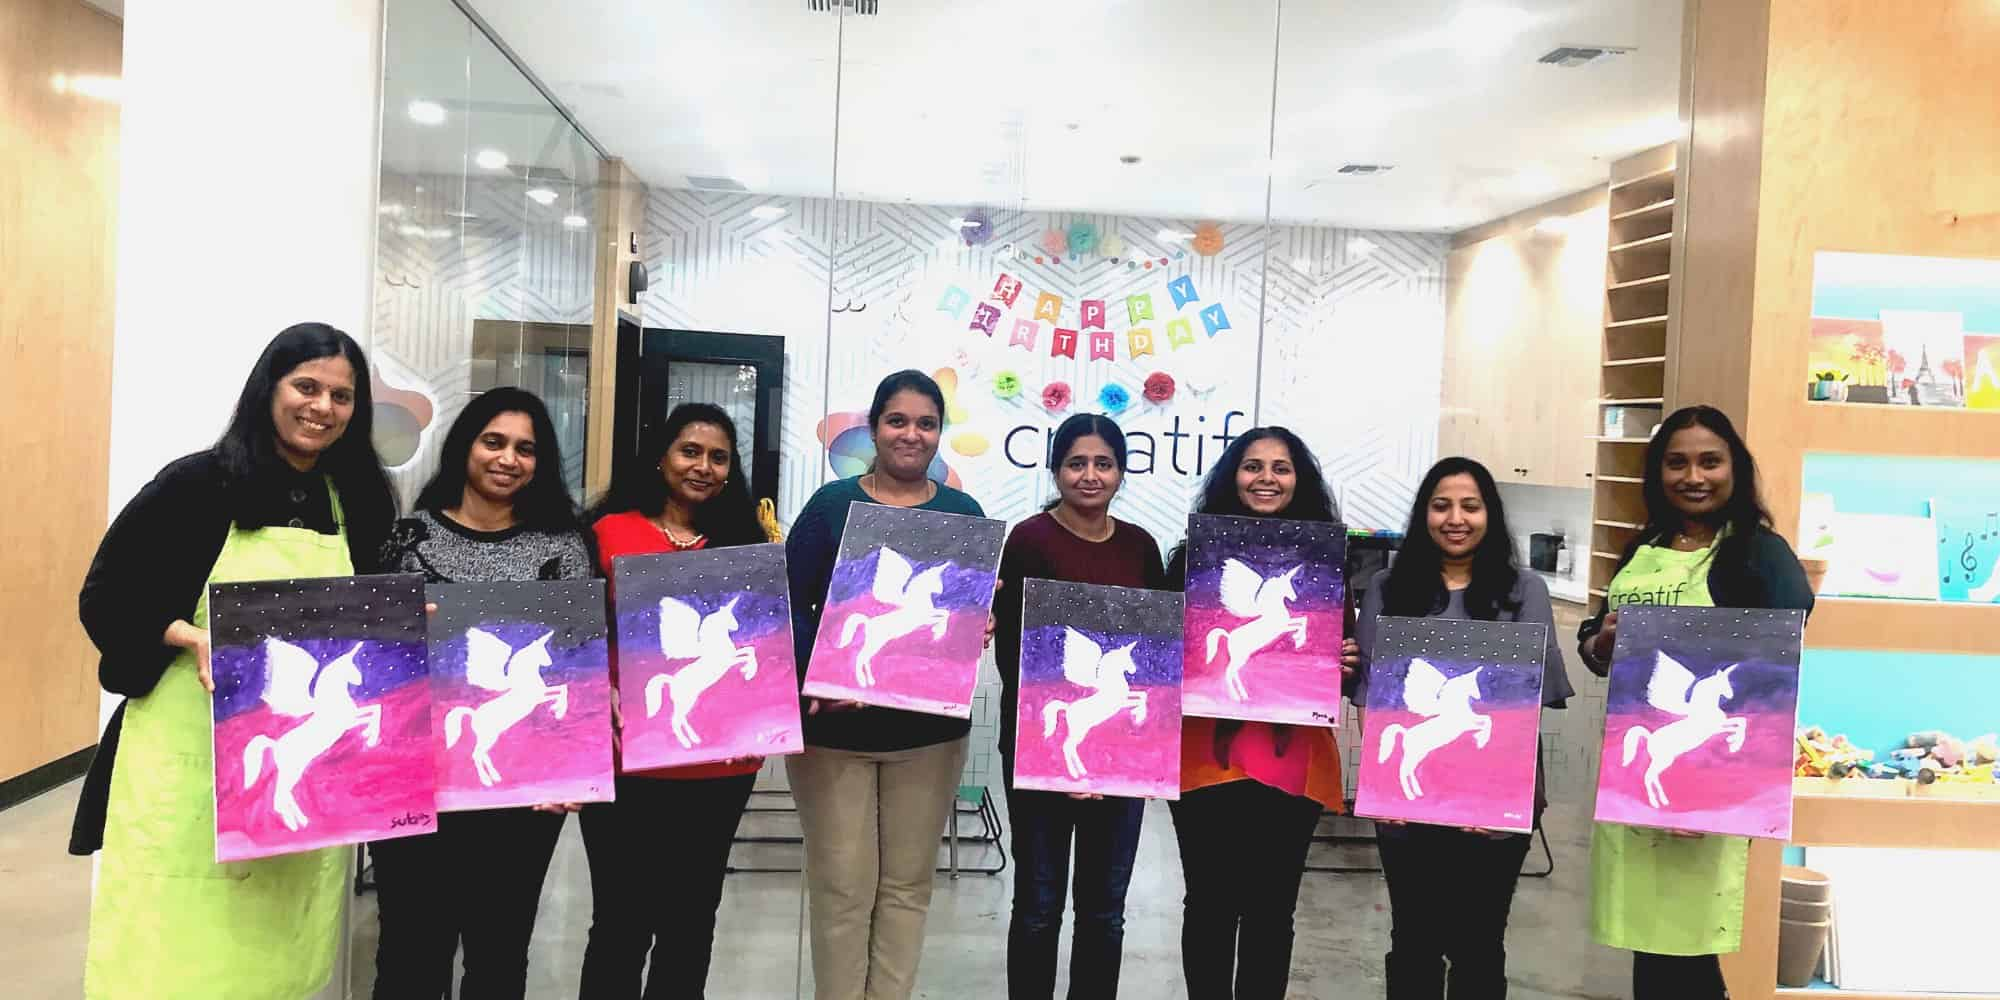 Team Building Painting Class